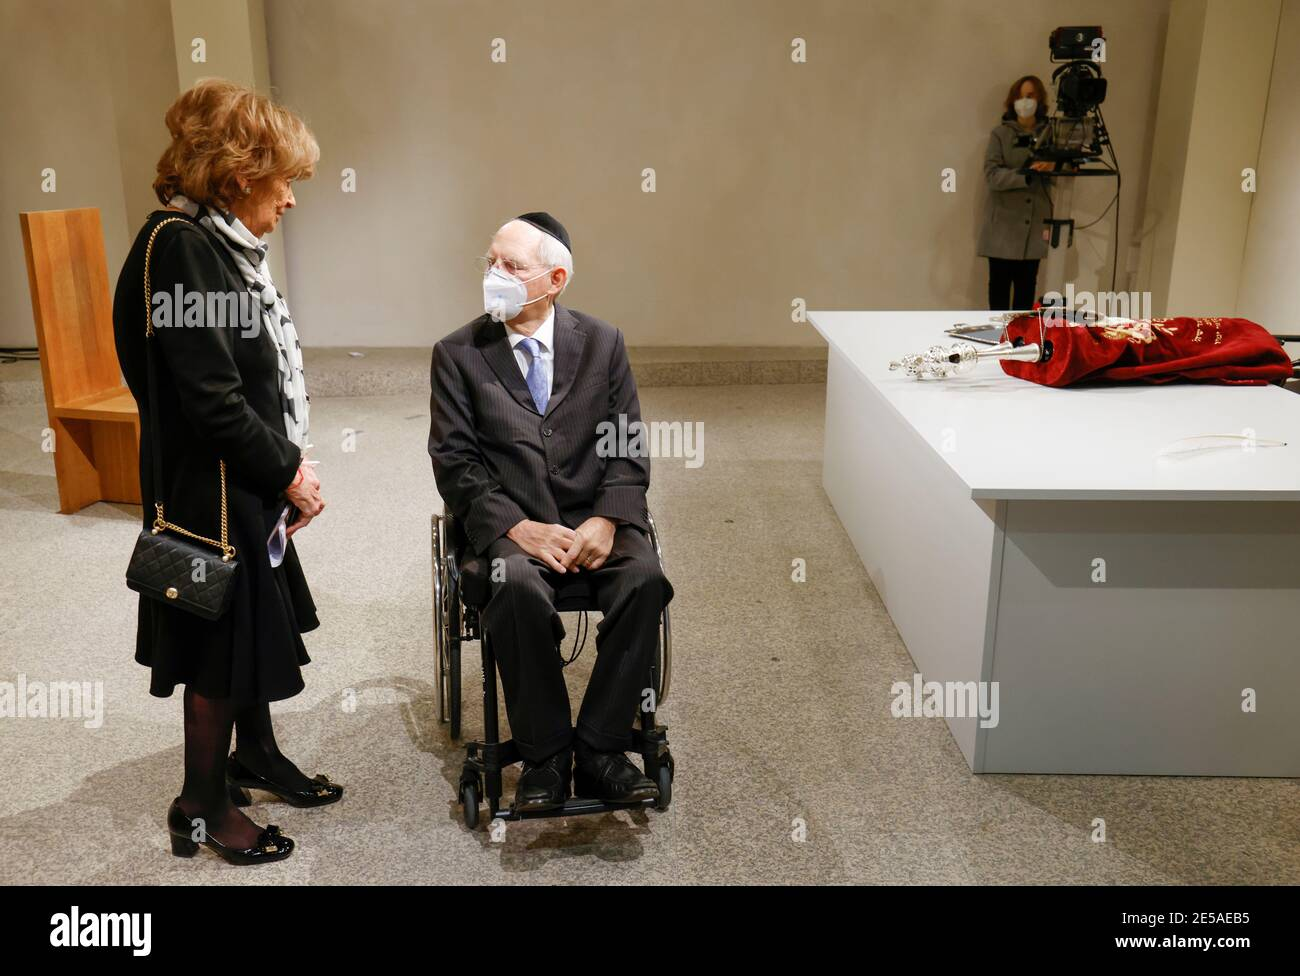 The Vice President of the European Jewish Congress and the World Jewish Congress Charlotte Knobloch and the President of the Bundestag Wolfgang Schaeuble speak next to the historic Sulzbach Torah Scroll (R) from 1792, rediscovered in 2013 and just restored, during a ceremony marking the 76th anniversary of the liberation of Nazi Germany's Auschwitz death camp, on International Holocaust Remembrance Day, at the Bundestag, in Berlin, Germany, January 27 , 2021. Odd Andersen/Pool via REUTERS Stock Photo